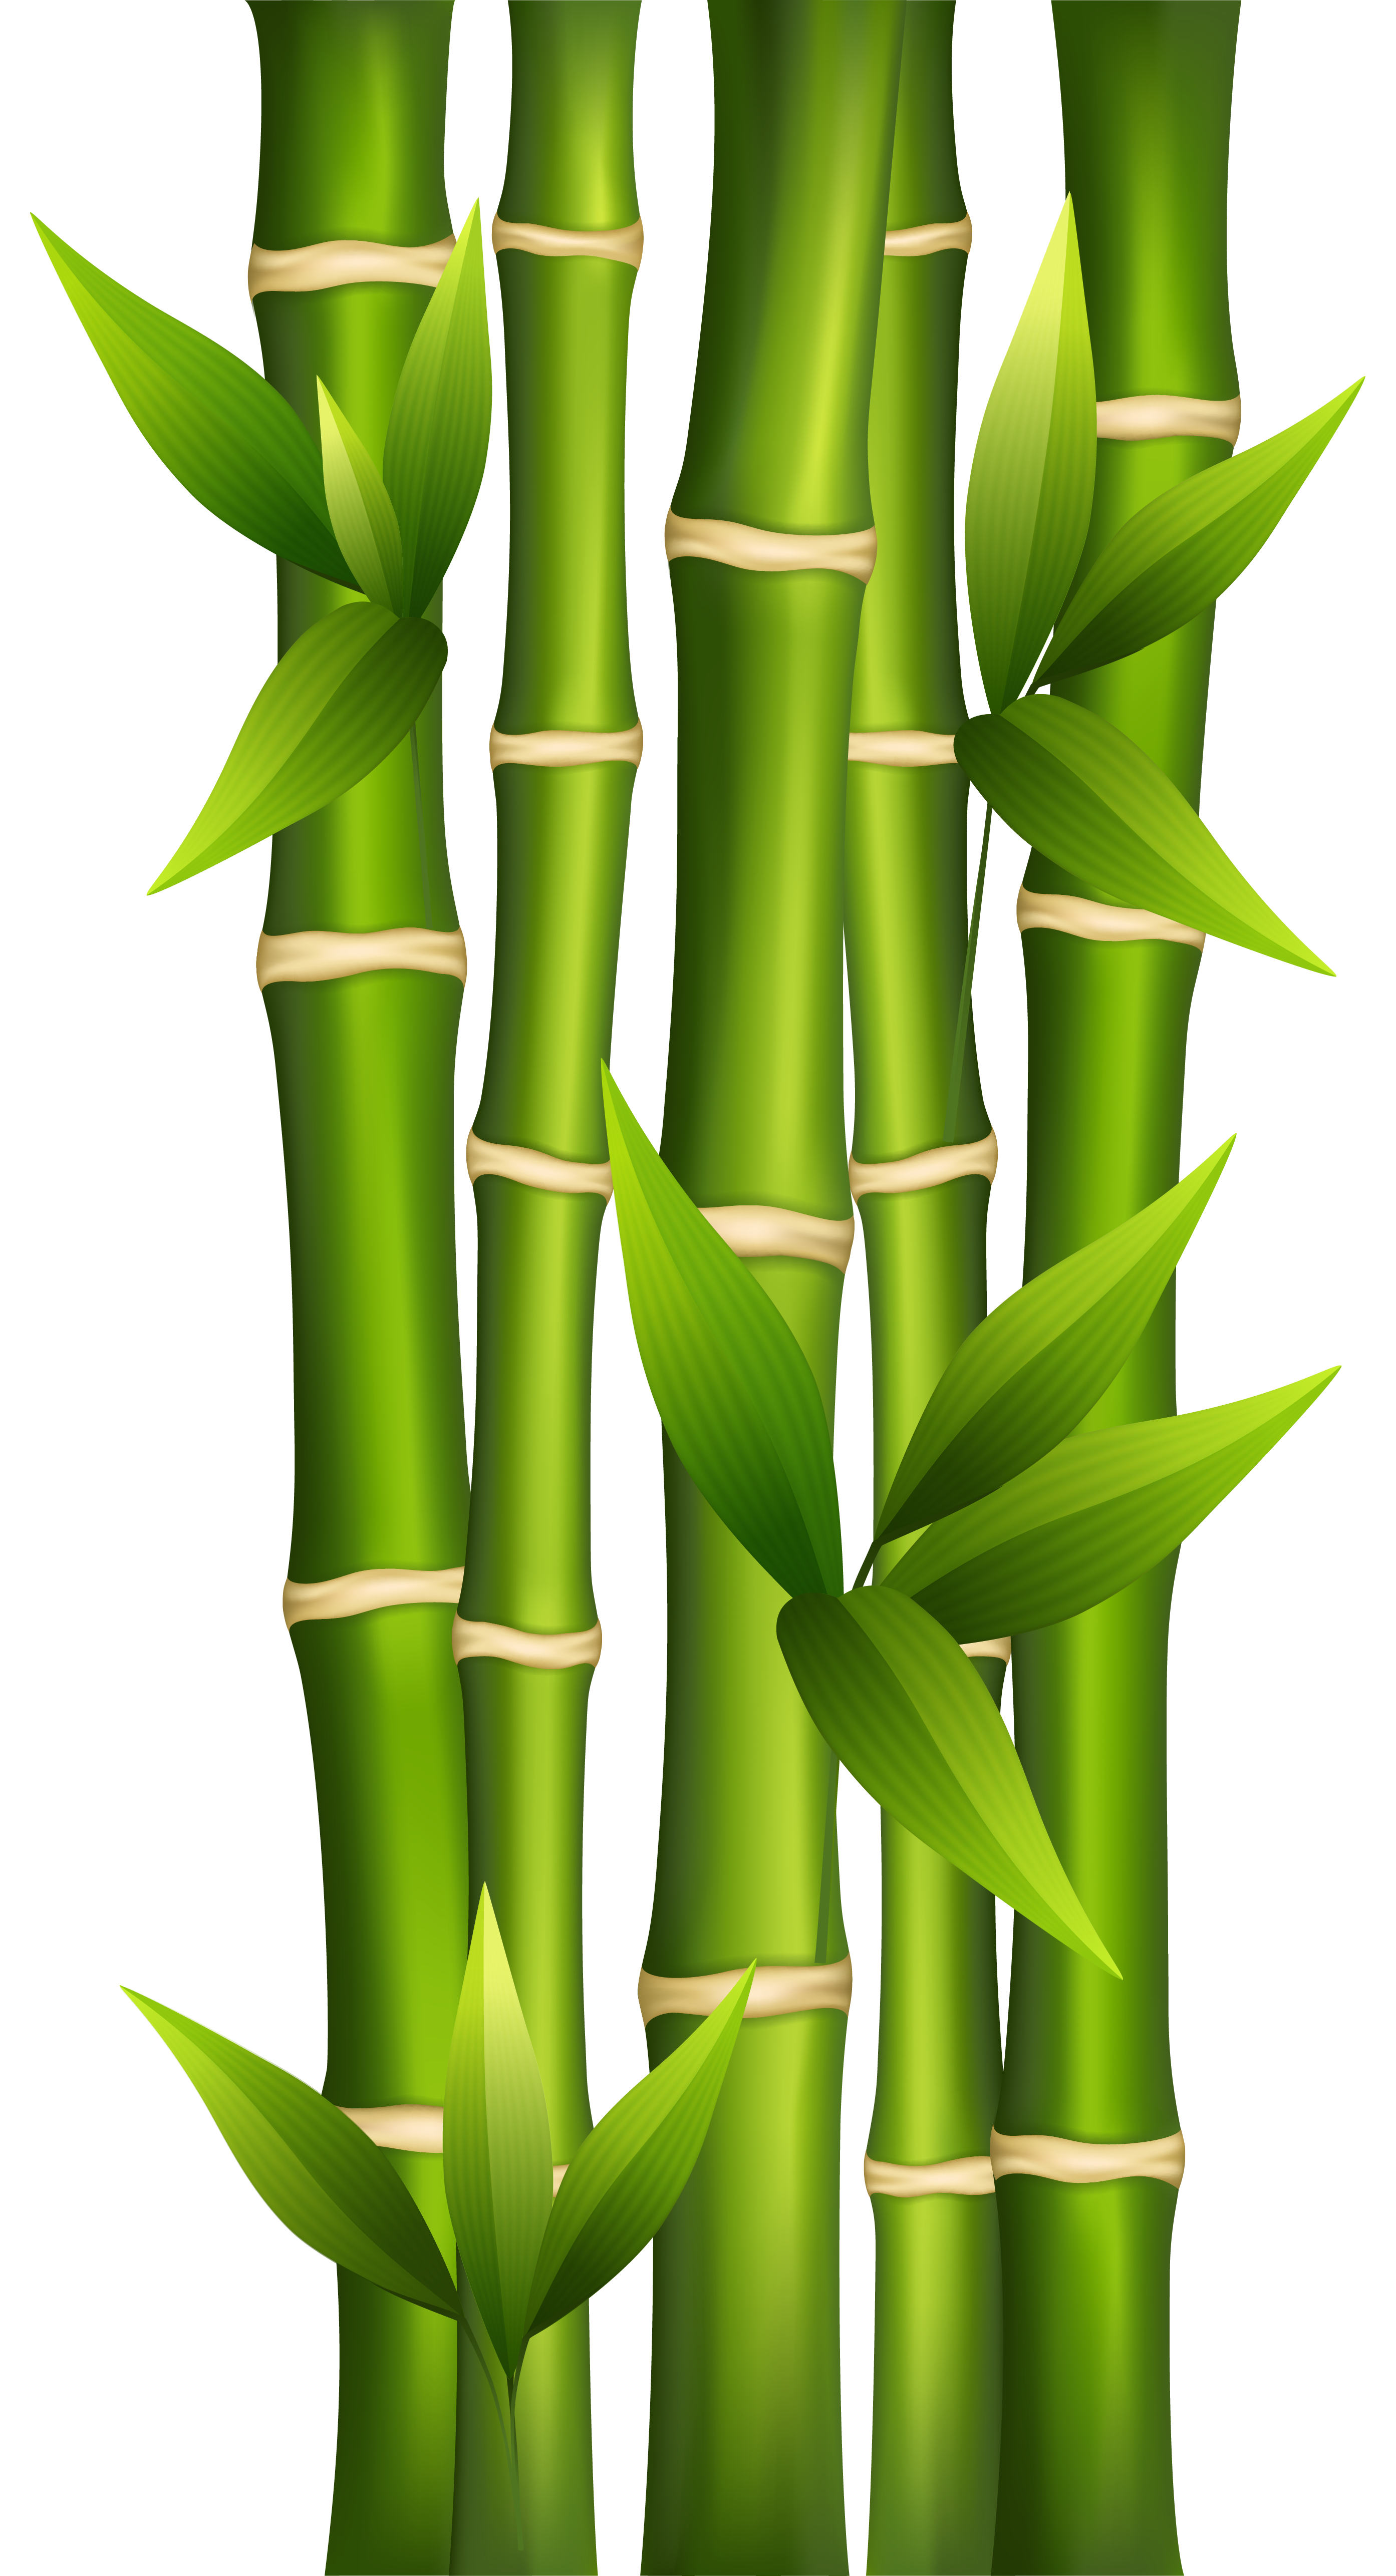 picture free Png clipart image gallery. Bamboo transparent background